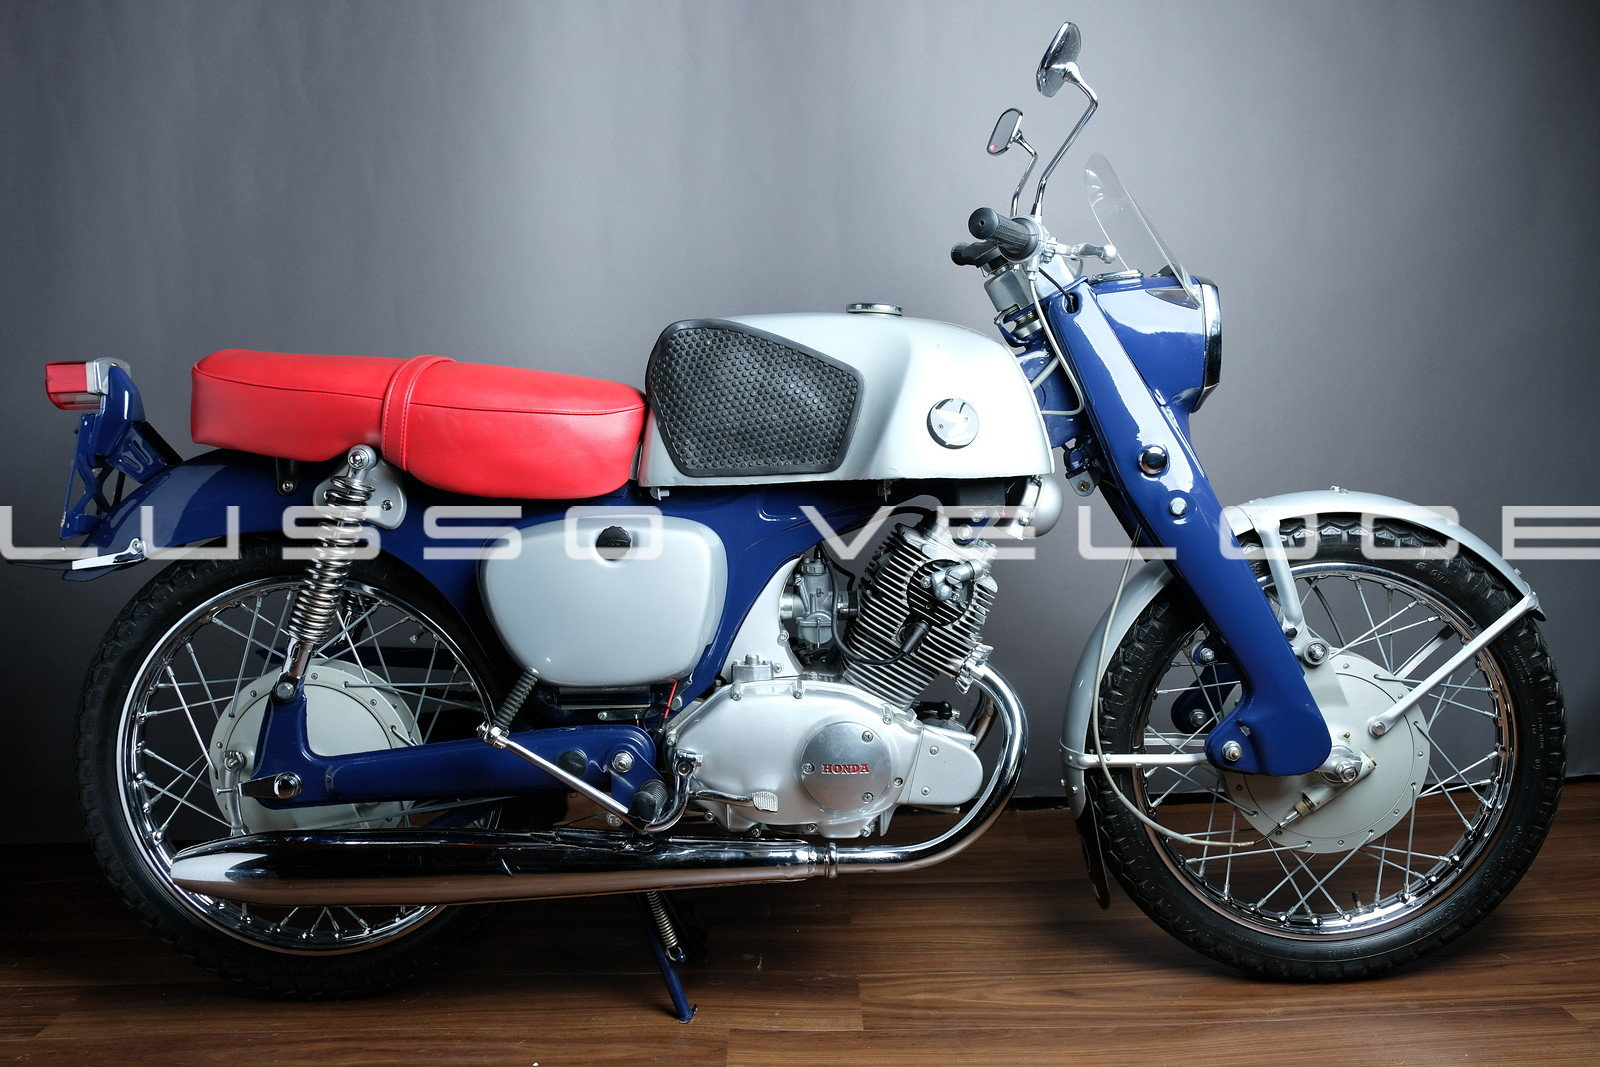 1964 Honda CB92 Benly 125 For Sale (picture 1 of 6)